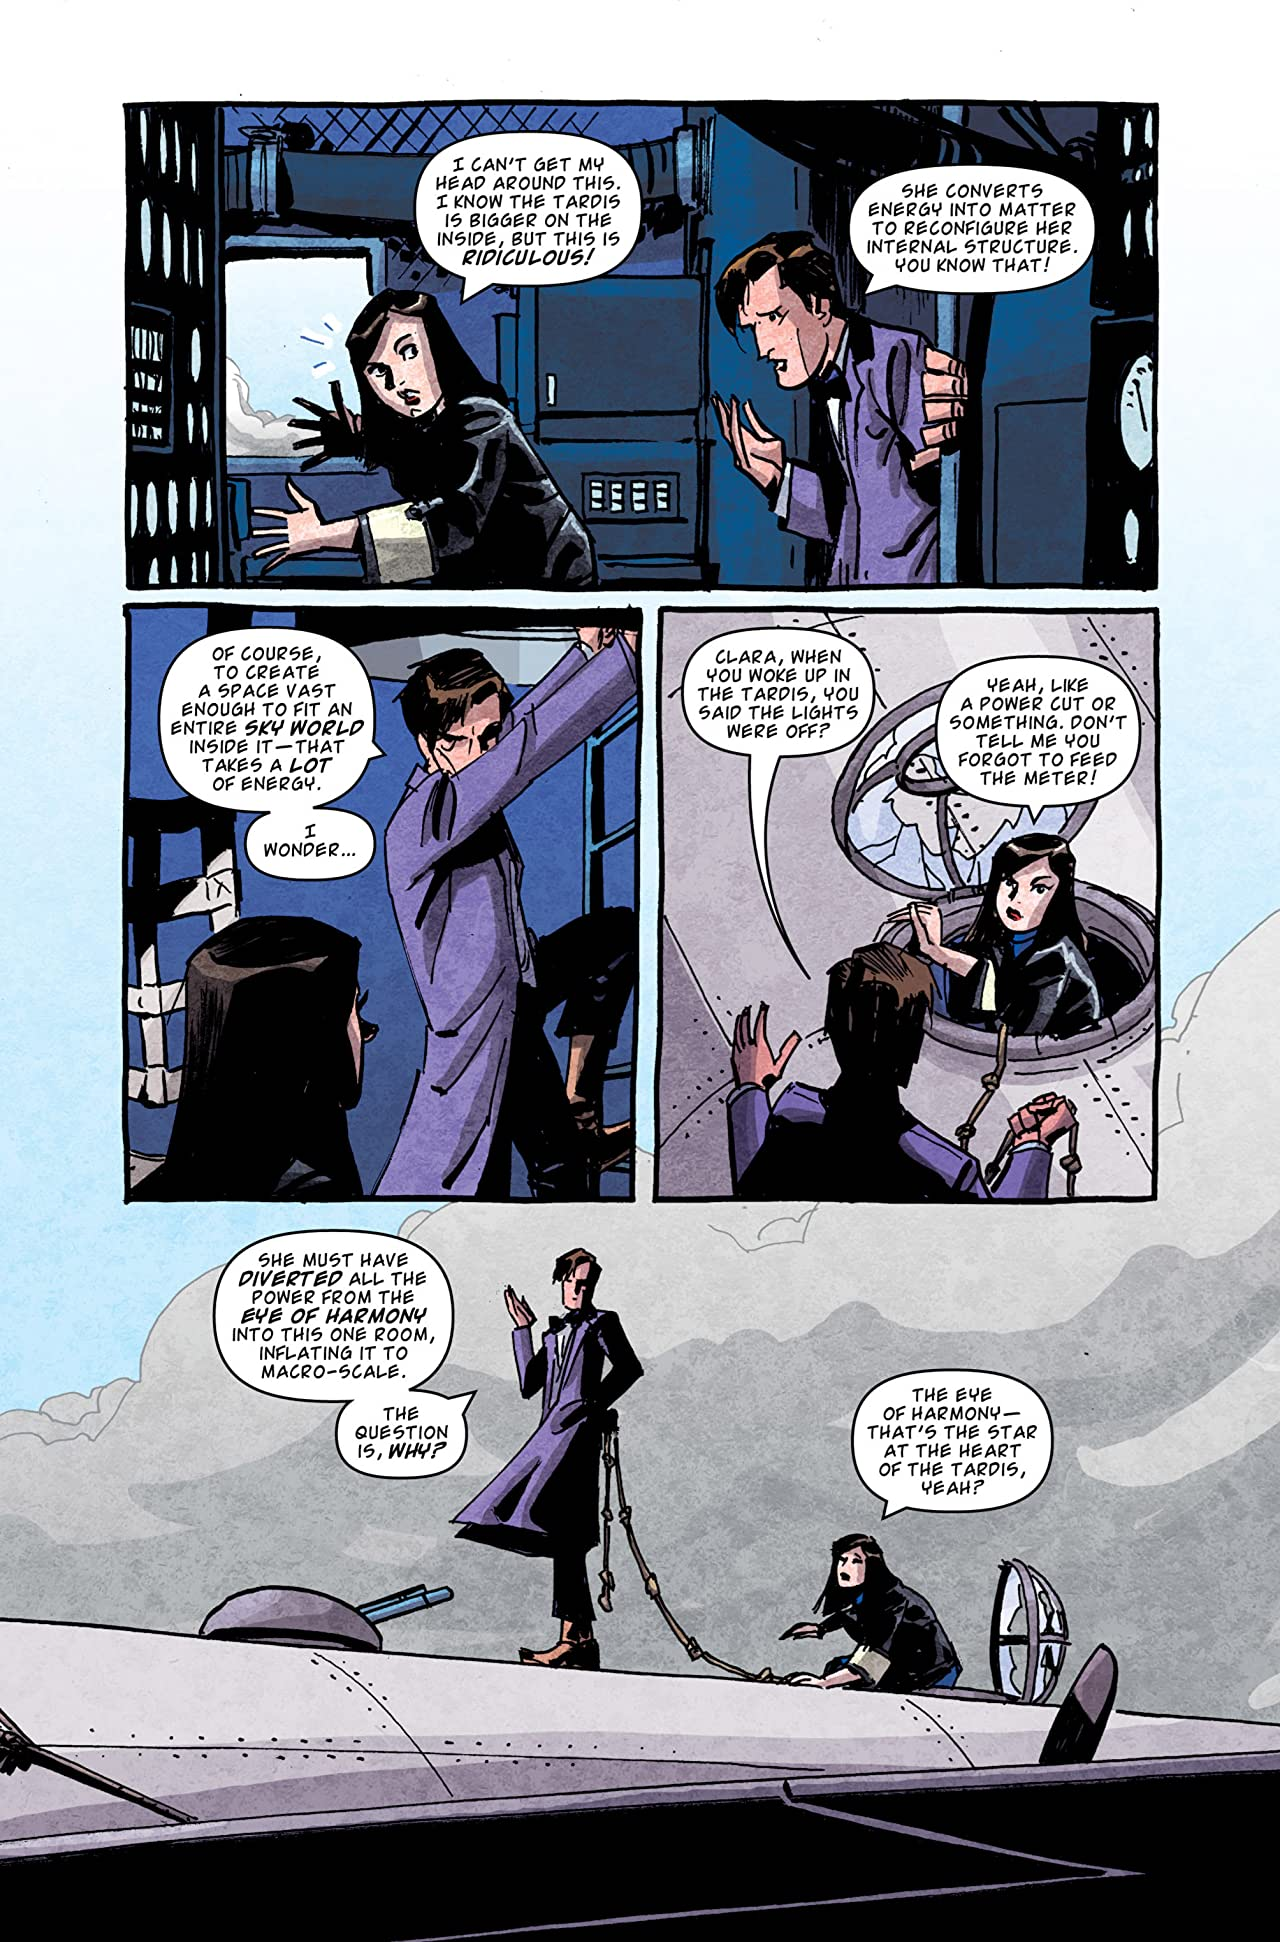 Doctor Who: The Eleventh Doctor Archives #33